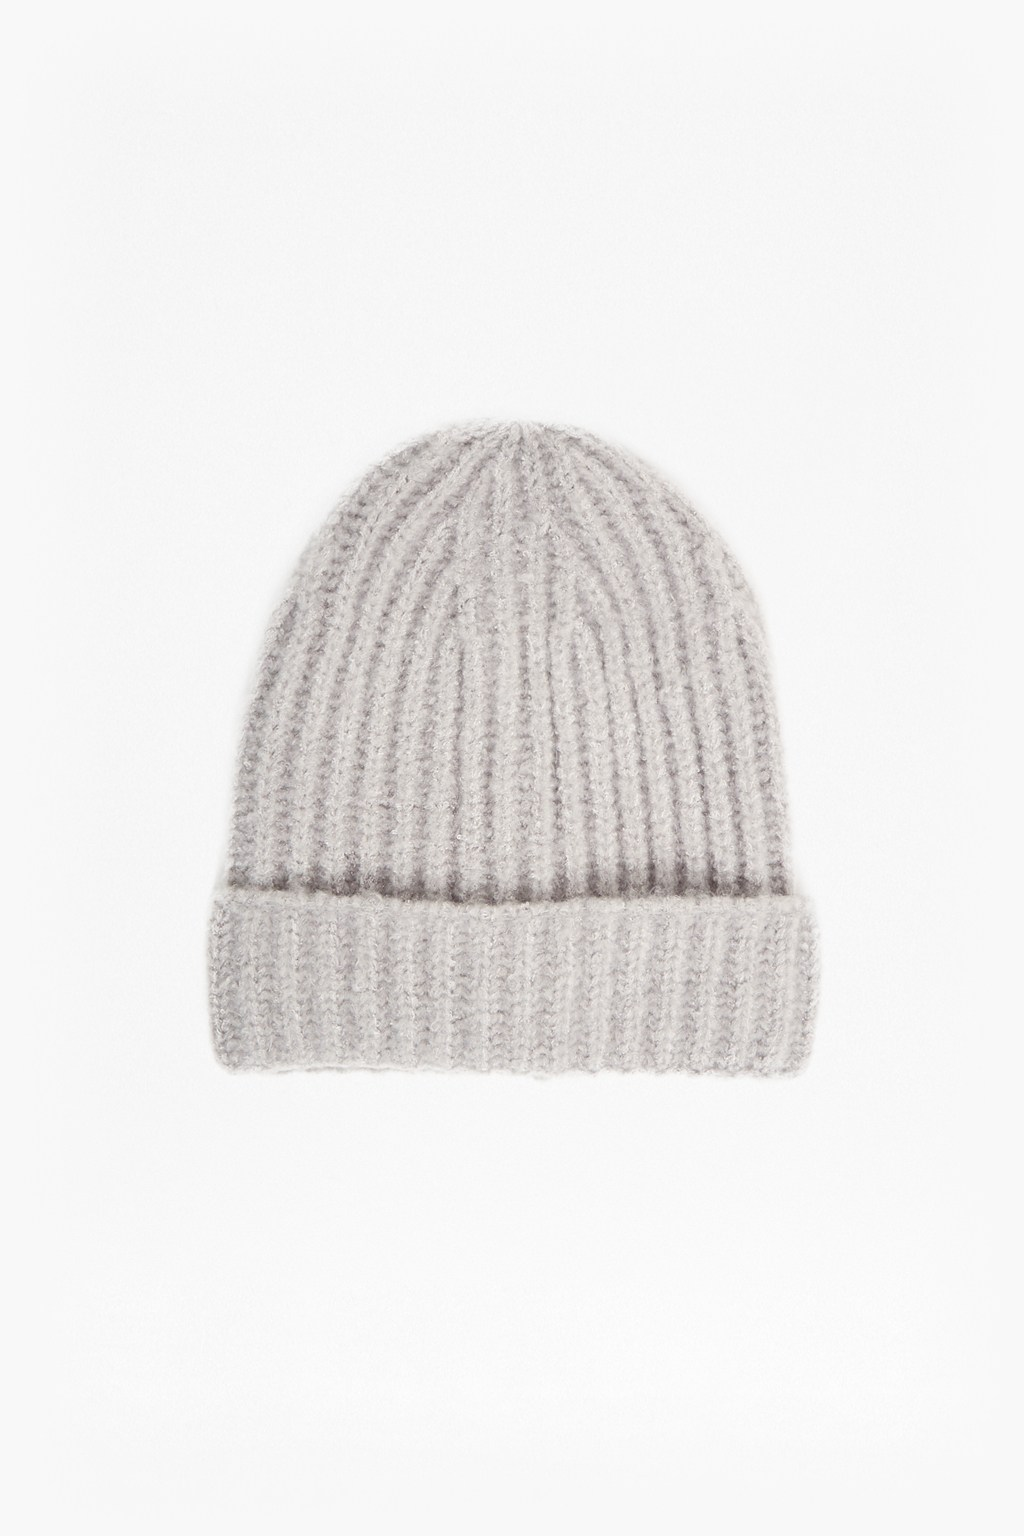 93a977e28bb Ribbed Knit Beanie Hat. loading images.